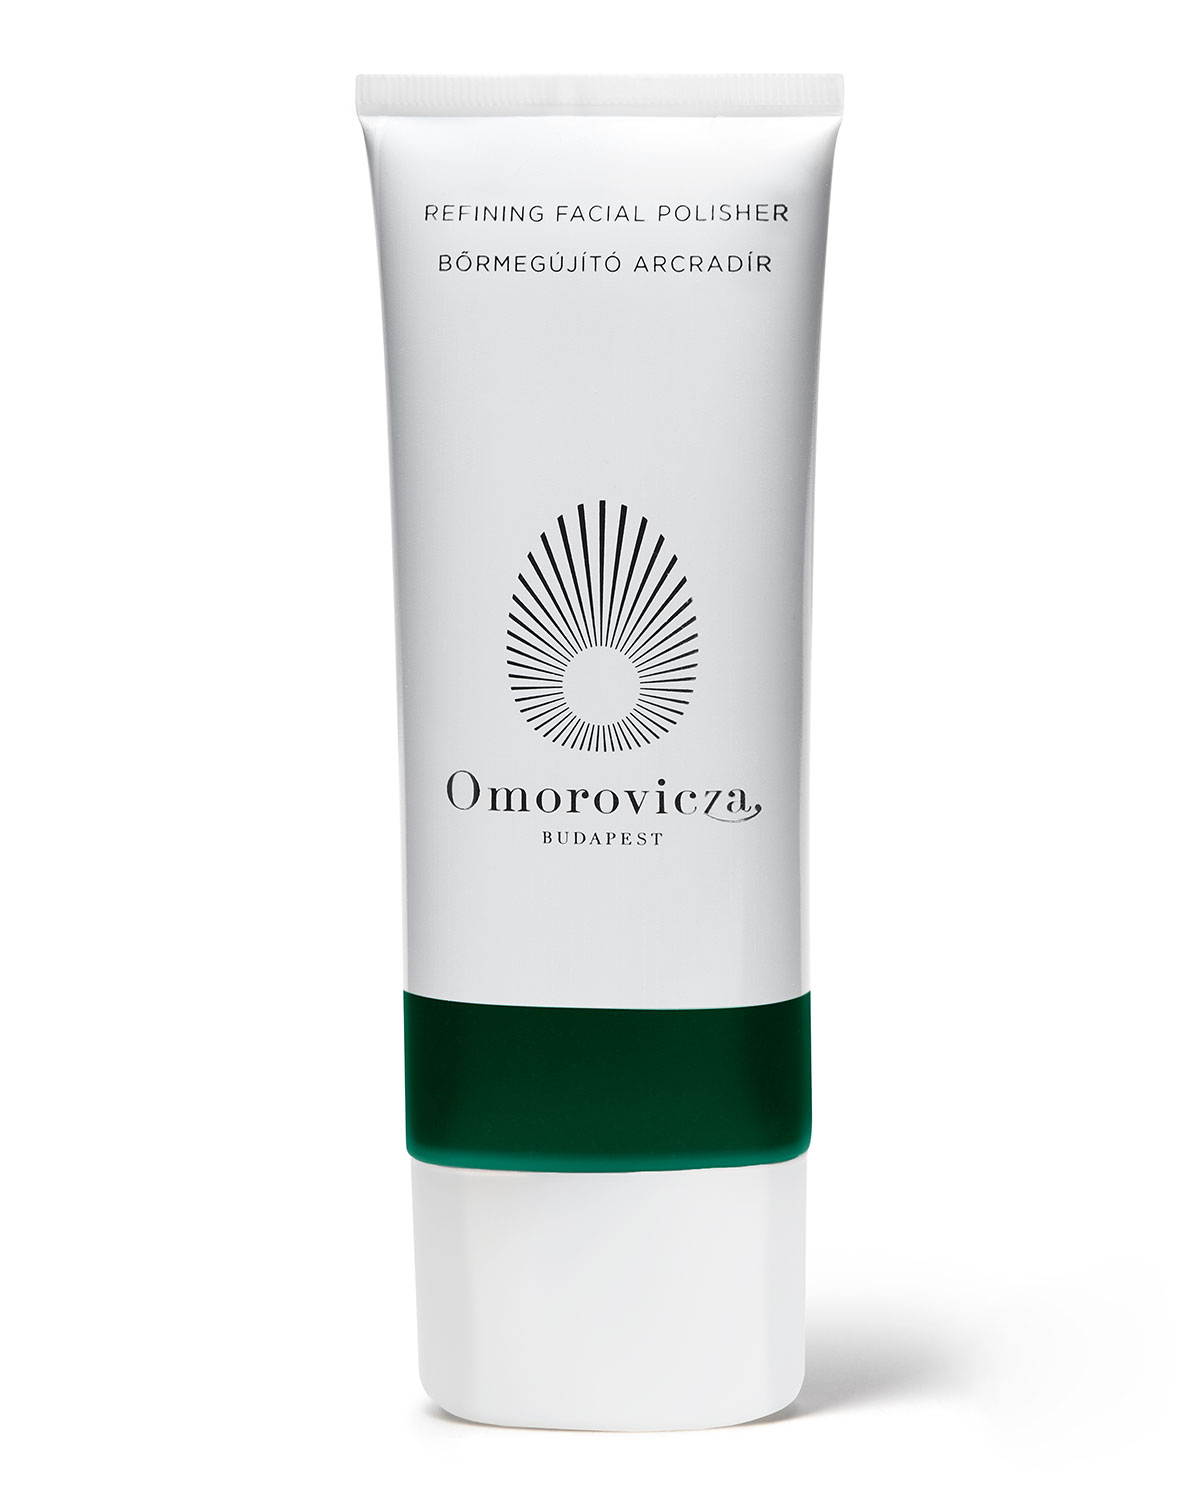 Omorovicza REFINING FACIAL POLISHER, 3.4 OZ./ 100 ML